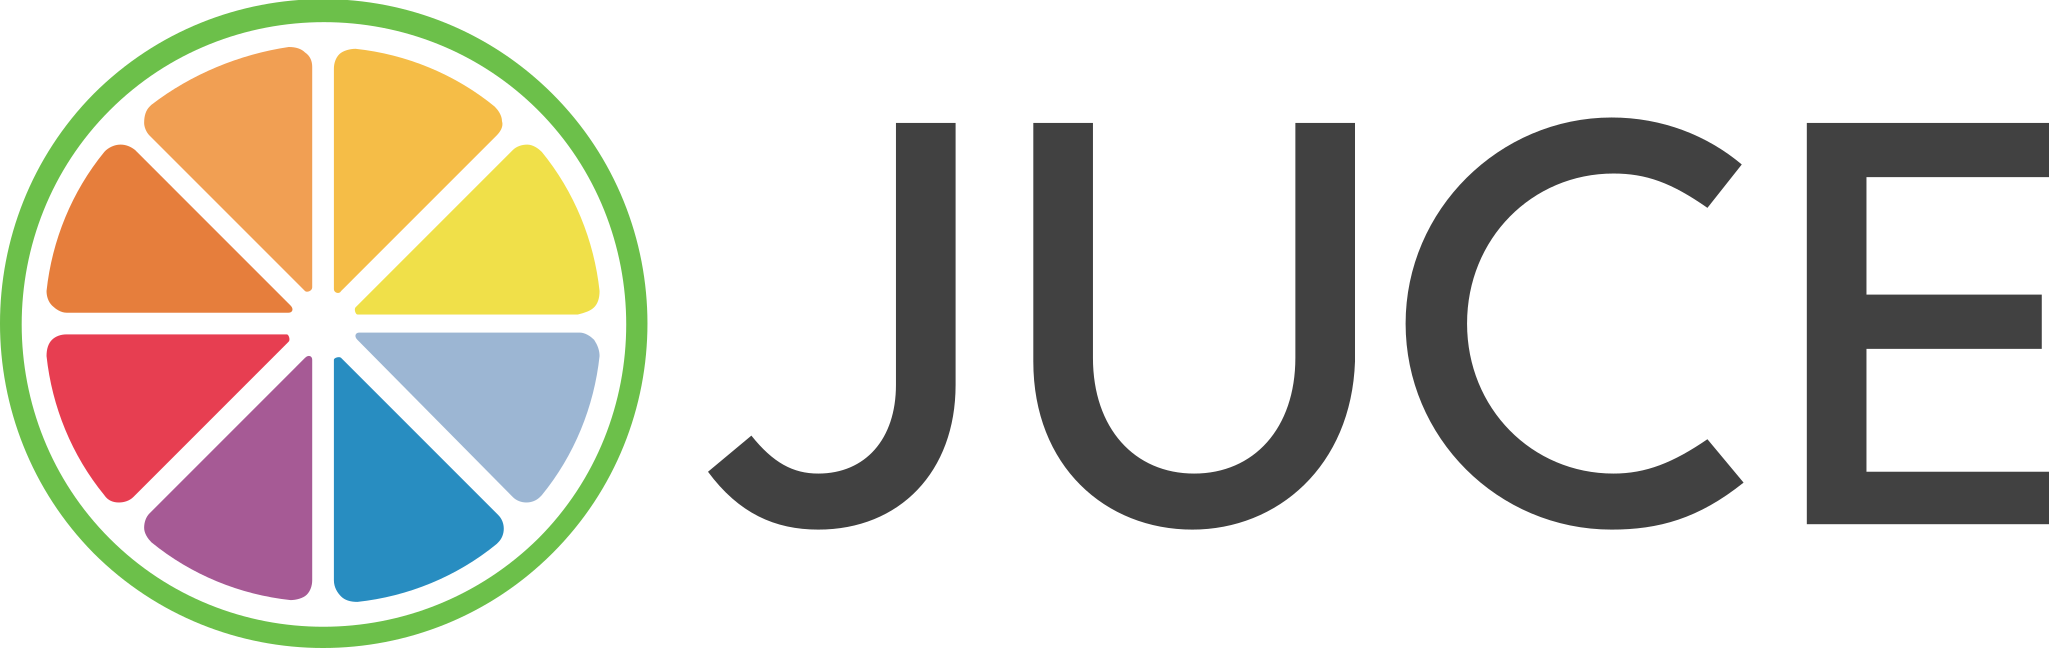 juce-logo-with-text.png